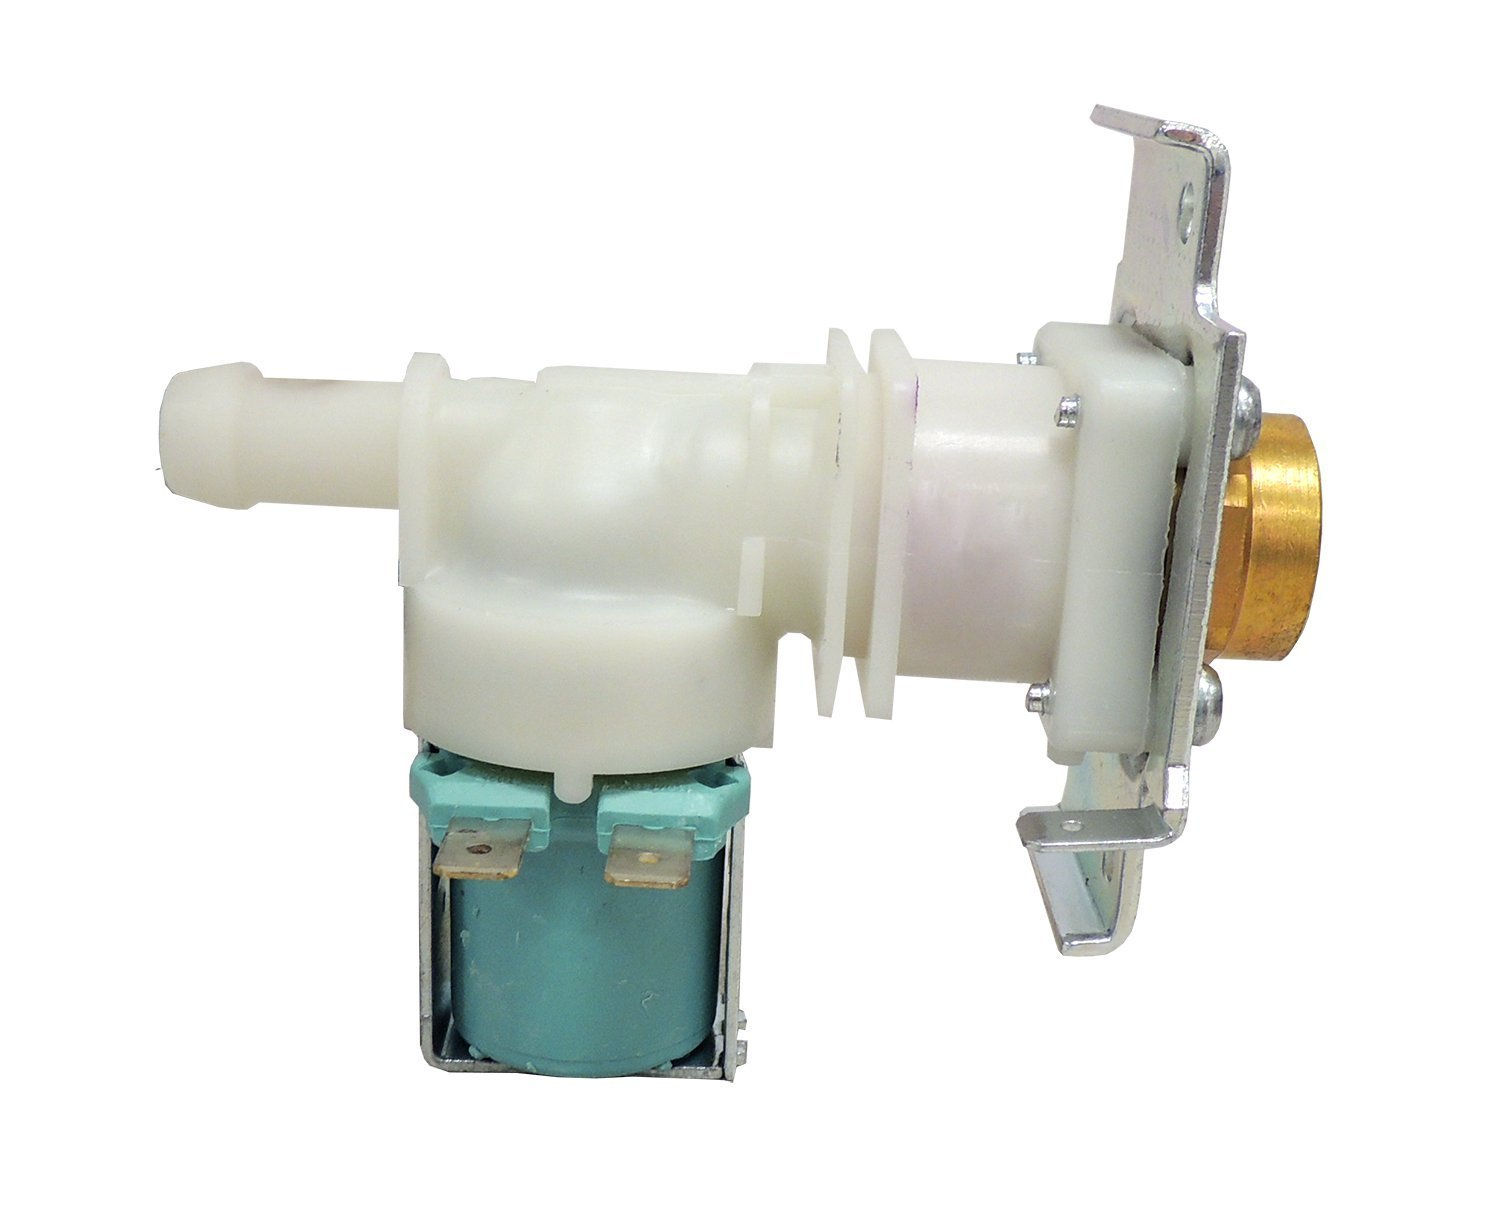 Supco WV5458 Dishwasher Water Valve, Replaces 00189533, 00580009, 00167081, LP11904, PS1266278 by Supco